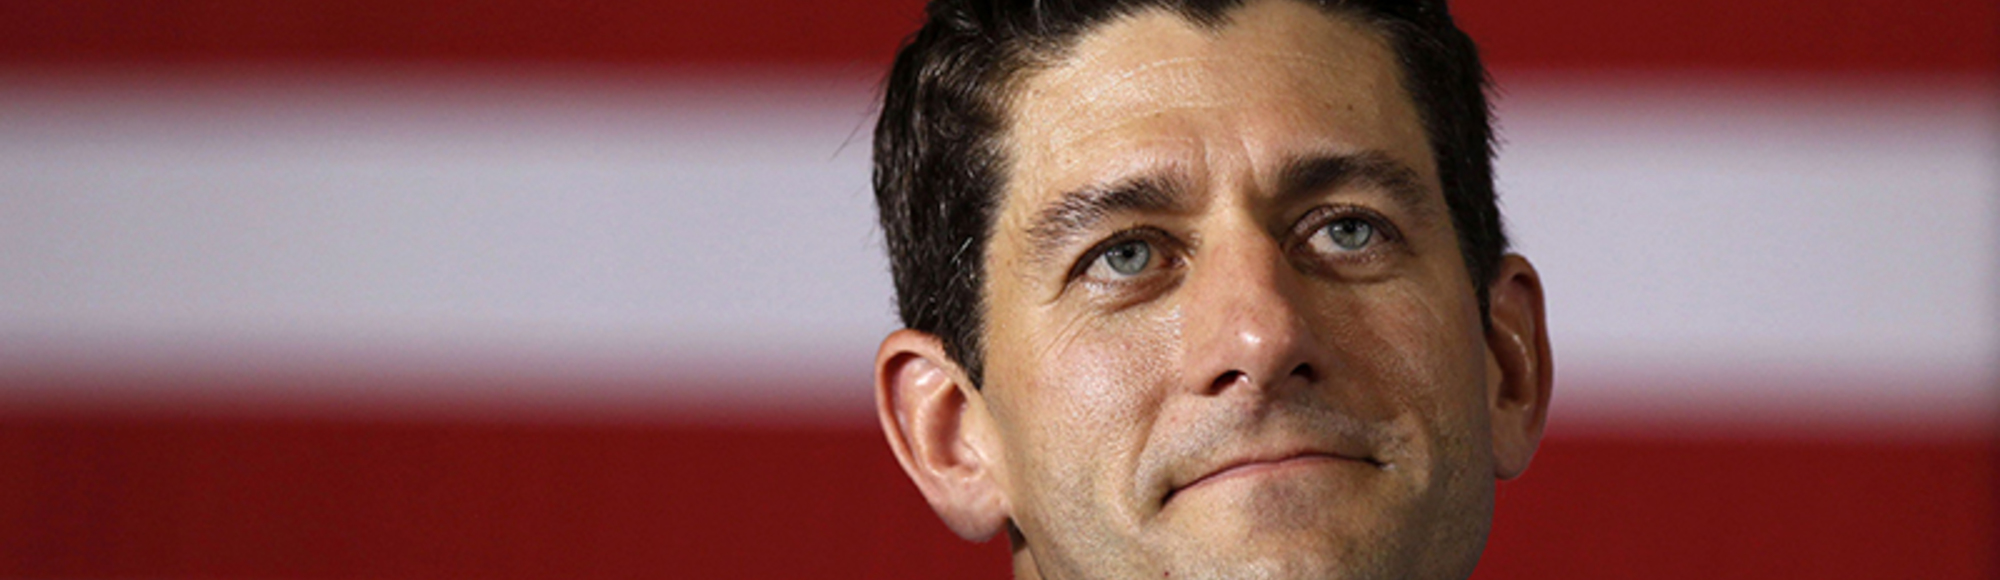 Paul Ryan: What Stupid People Think a Smart Guy Sounds Like